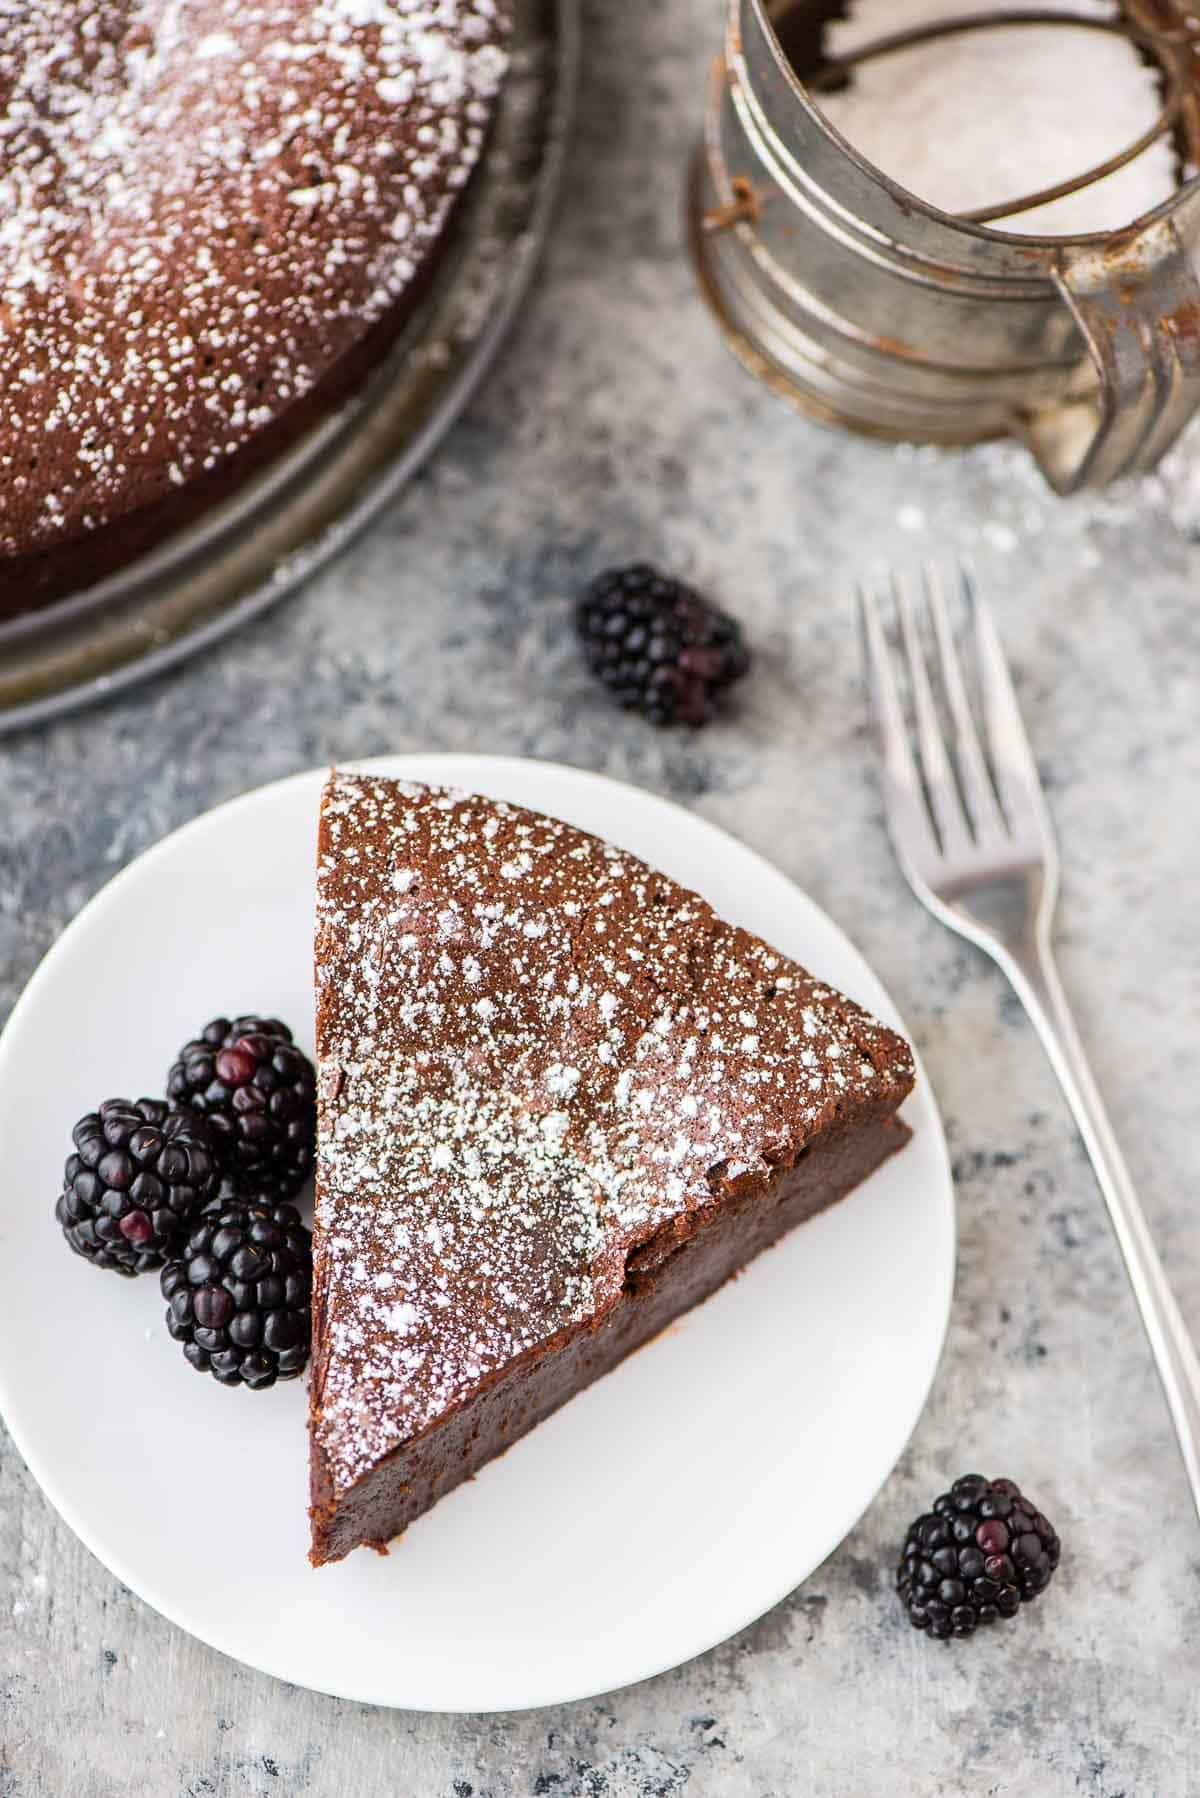 Rich and decadent Flourless Chocolate Torte. Easy to make and absolutely decadent! {gluten free and grain free} Recipe at wellplated.com   @wellplated